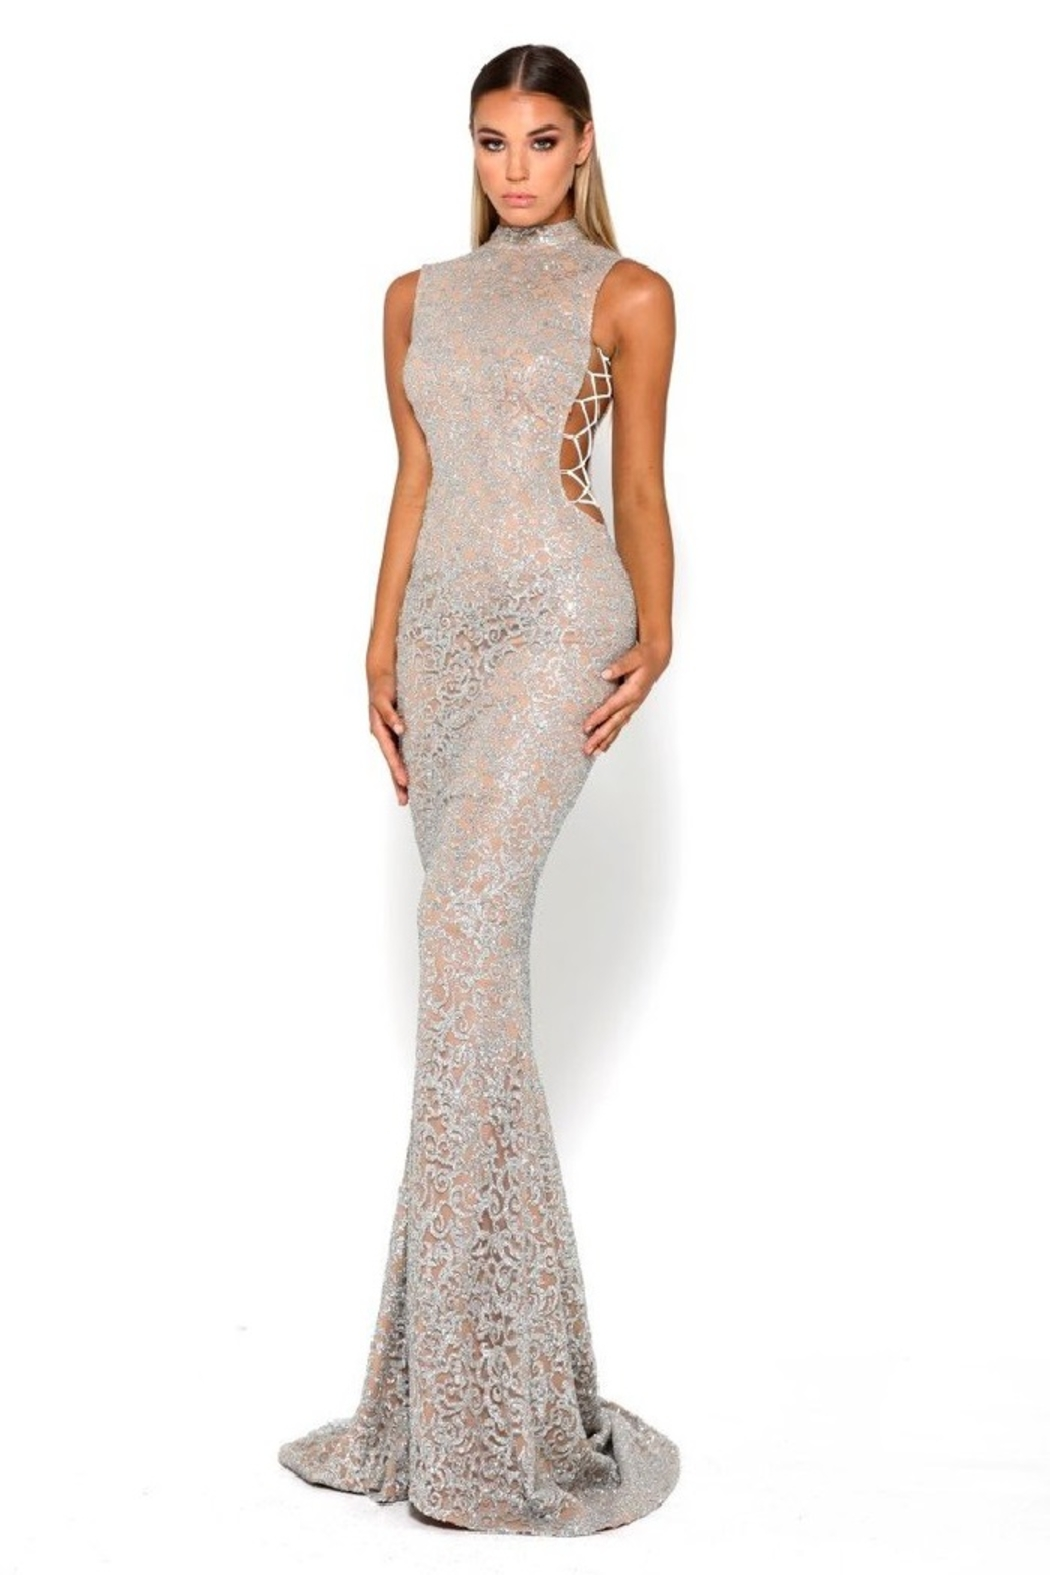 PORTIA AND SCARLETT Gold Glitter Fit & Flare Long Formal Dress - Front Full Image